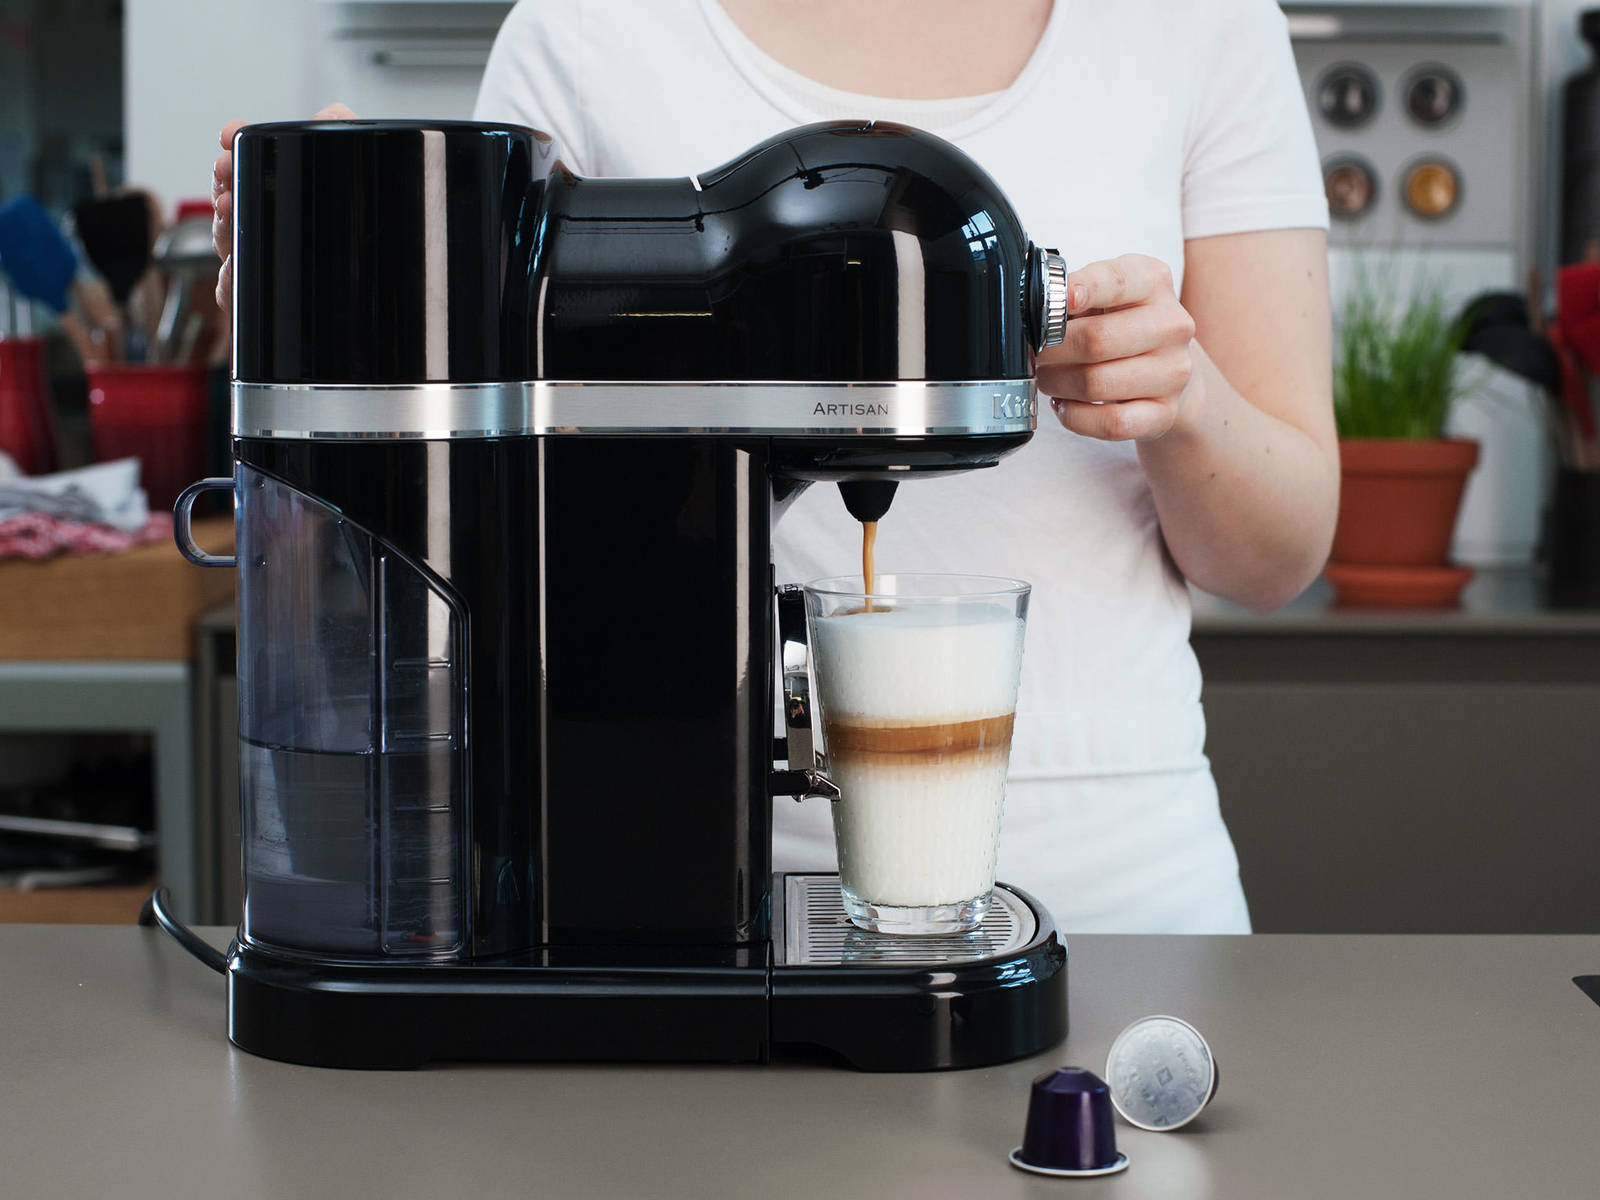 For a strong espresso flavor, use Nespresso machine with a Nespresso Arpeggio capsule. Add one shot of espresso to glass.